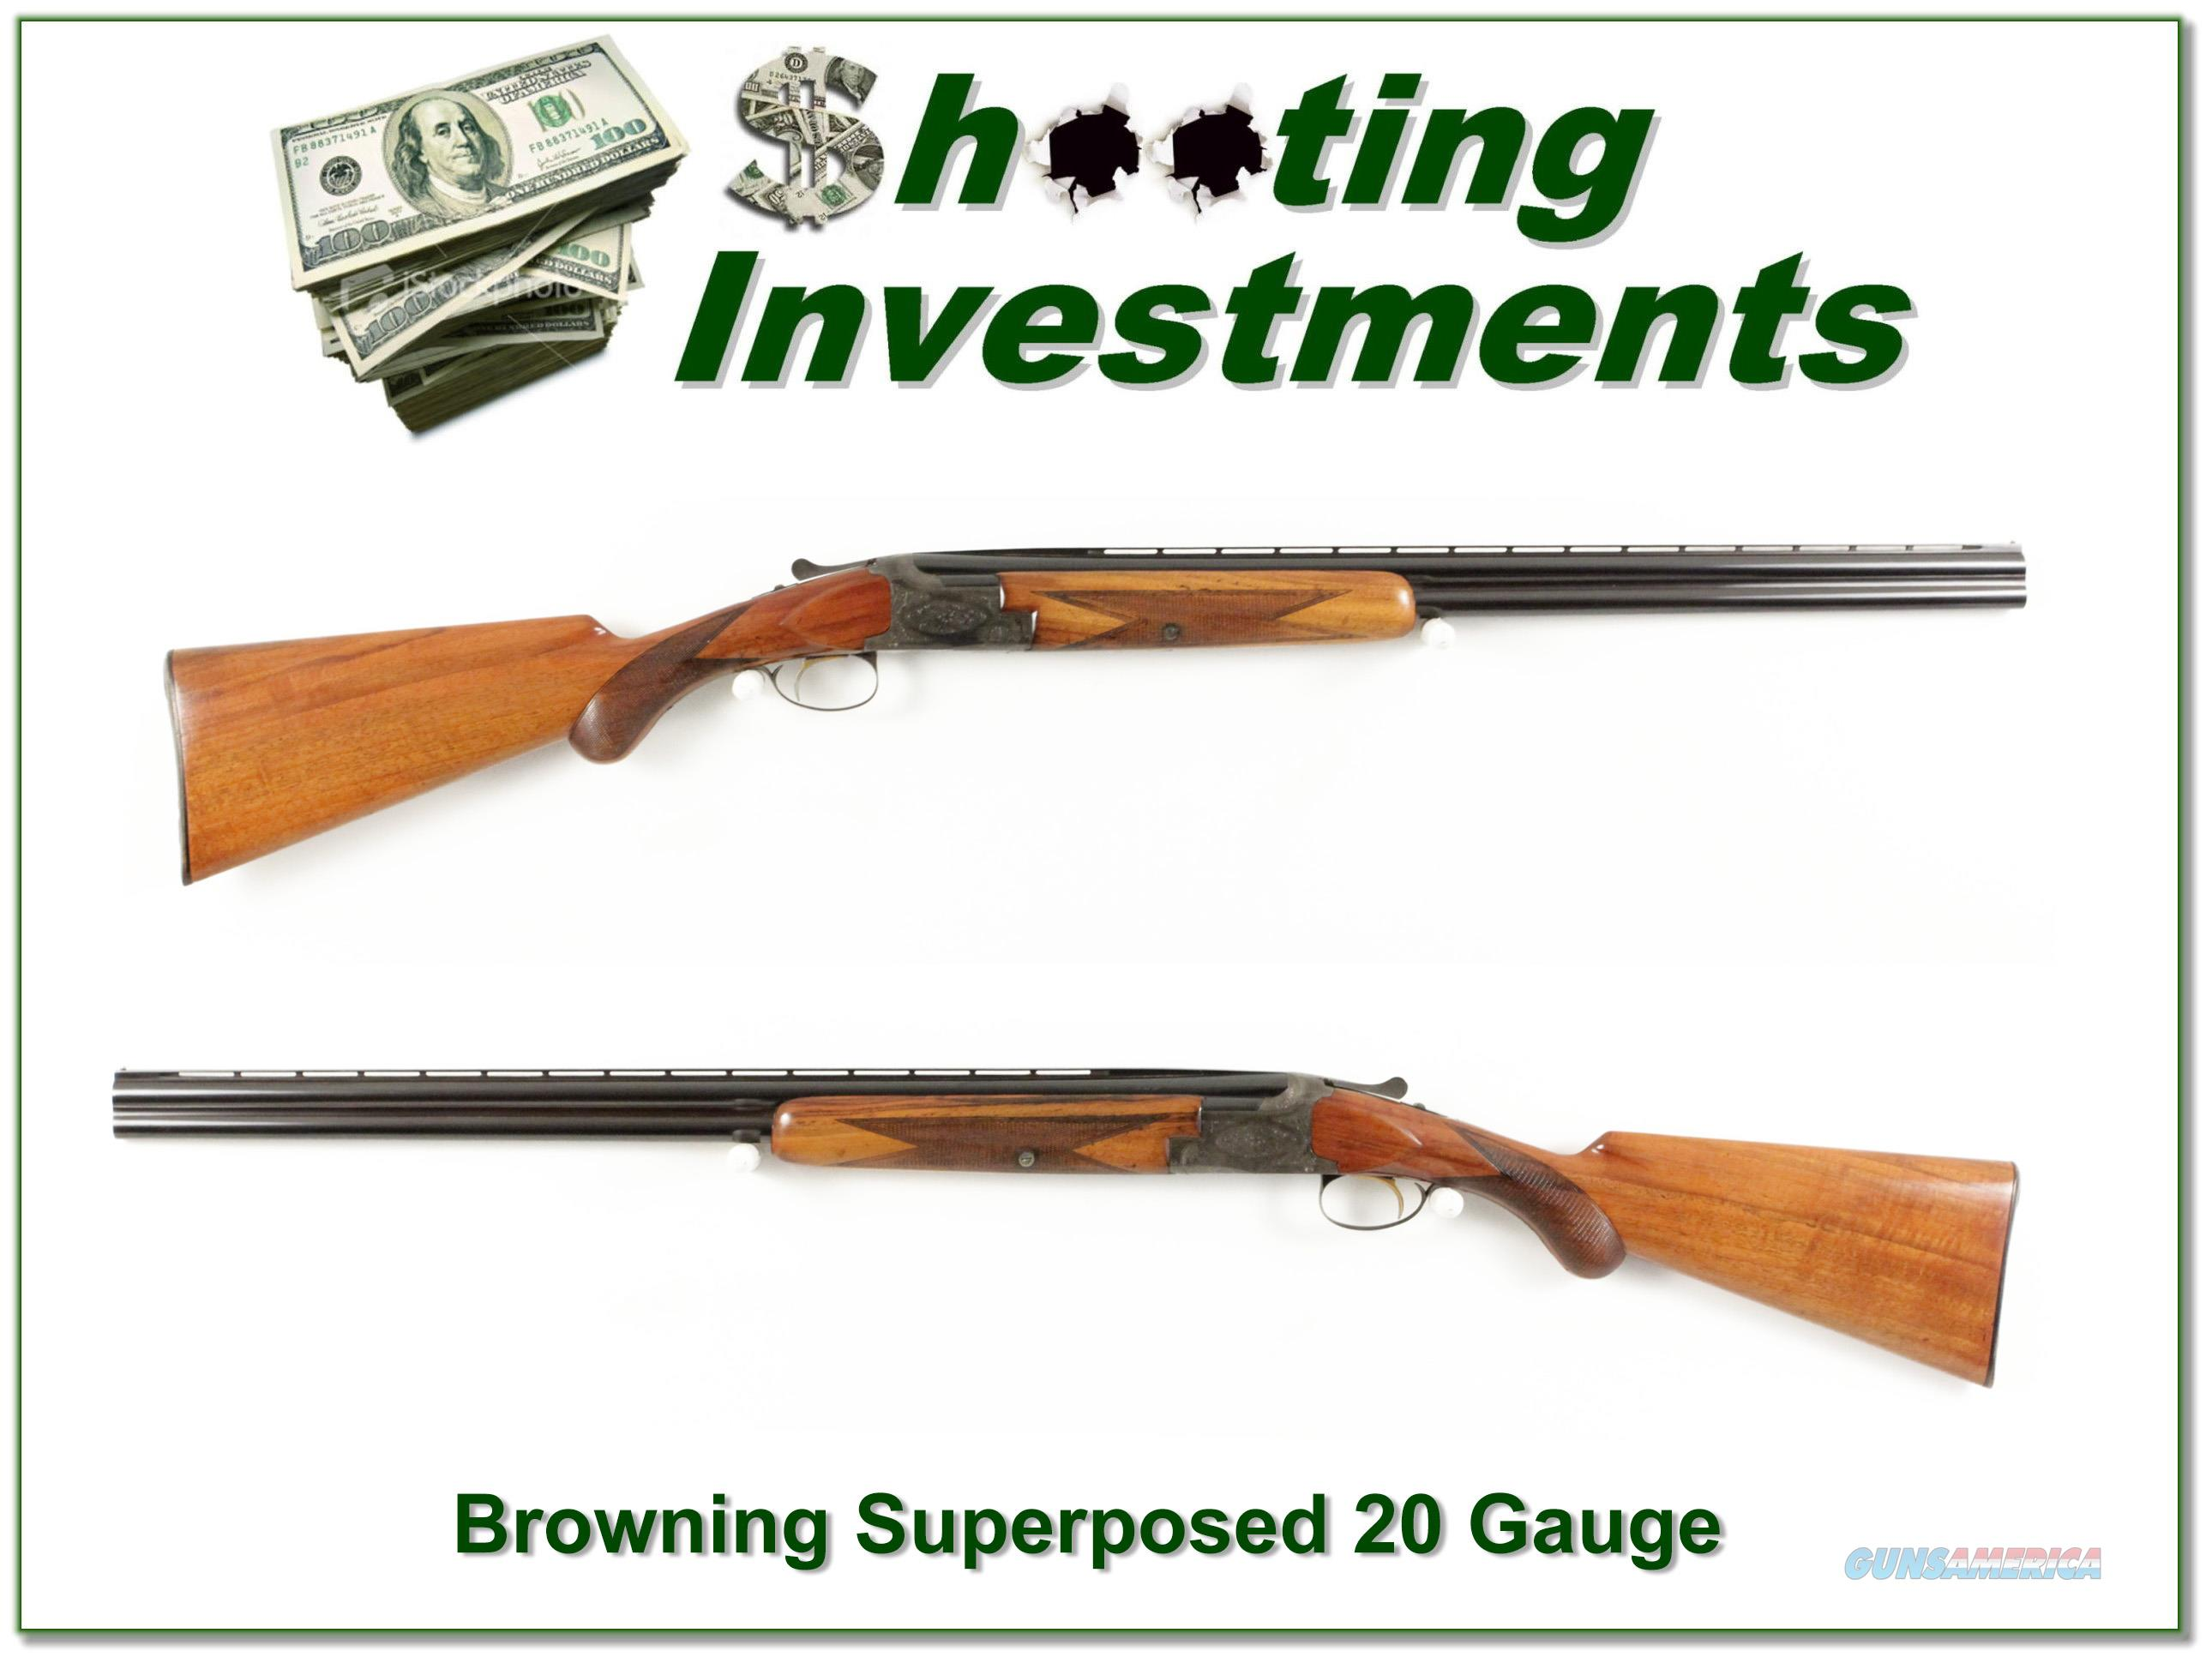 Browning Superposed 56 Belgium 20 Gauge 26.5in  Guns > Shotguns > Browning Shotguns > Over Unders > Belgian Manufacture